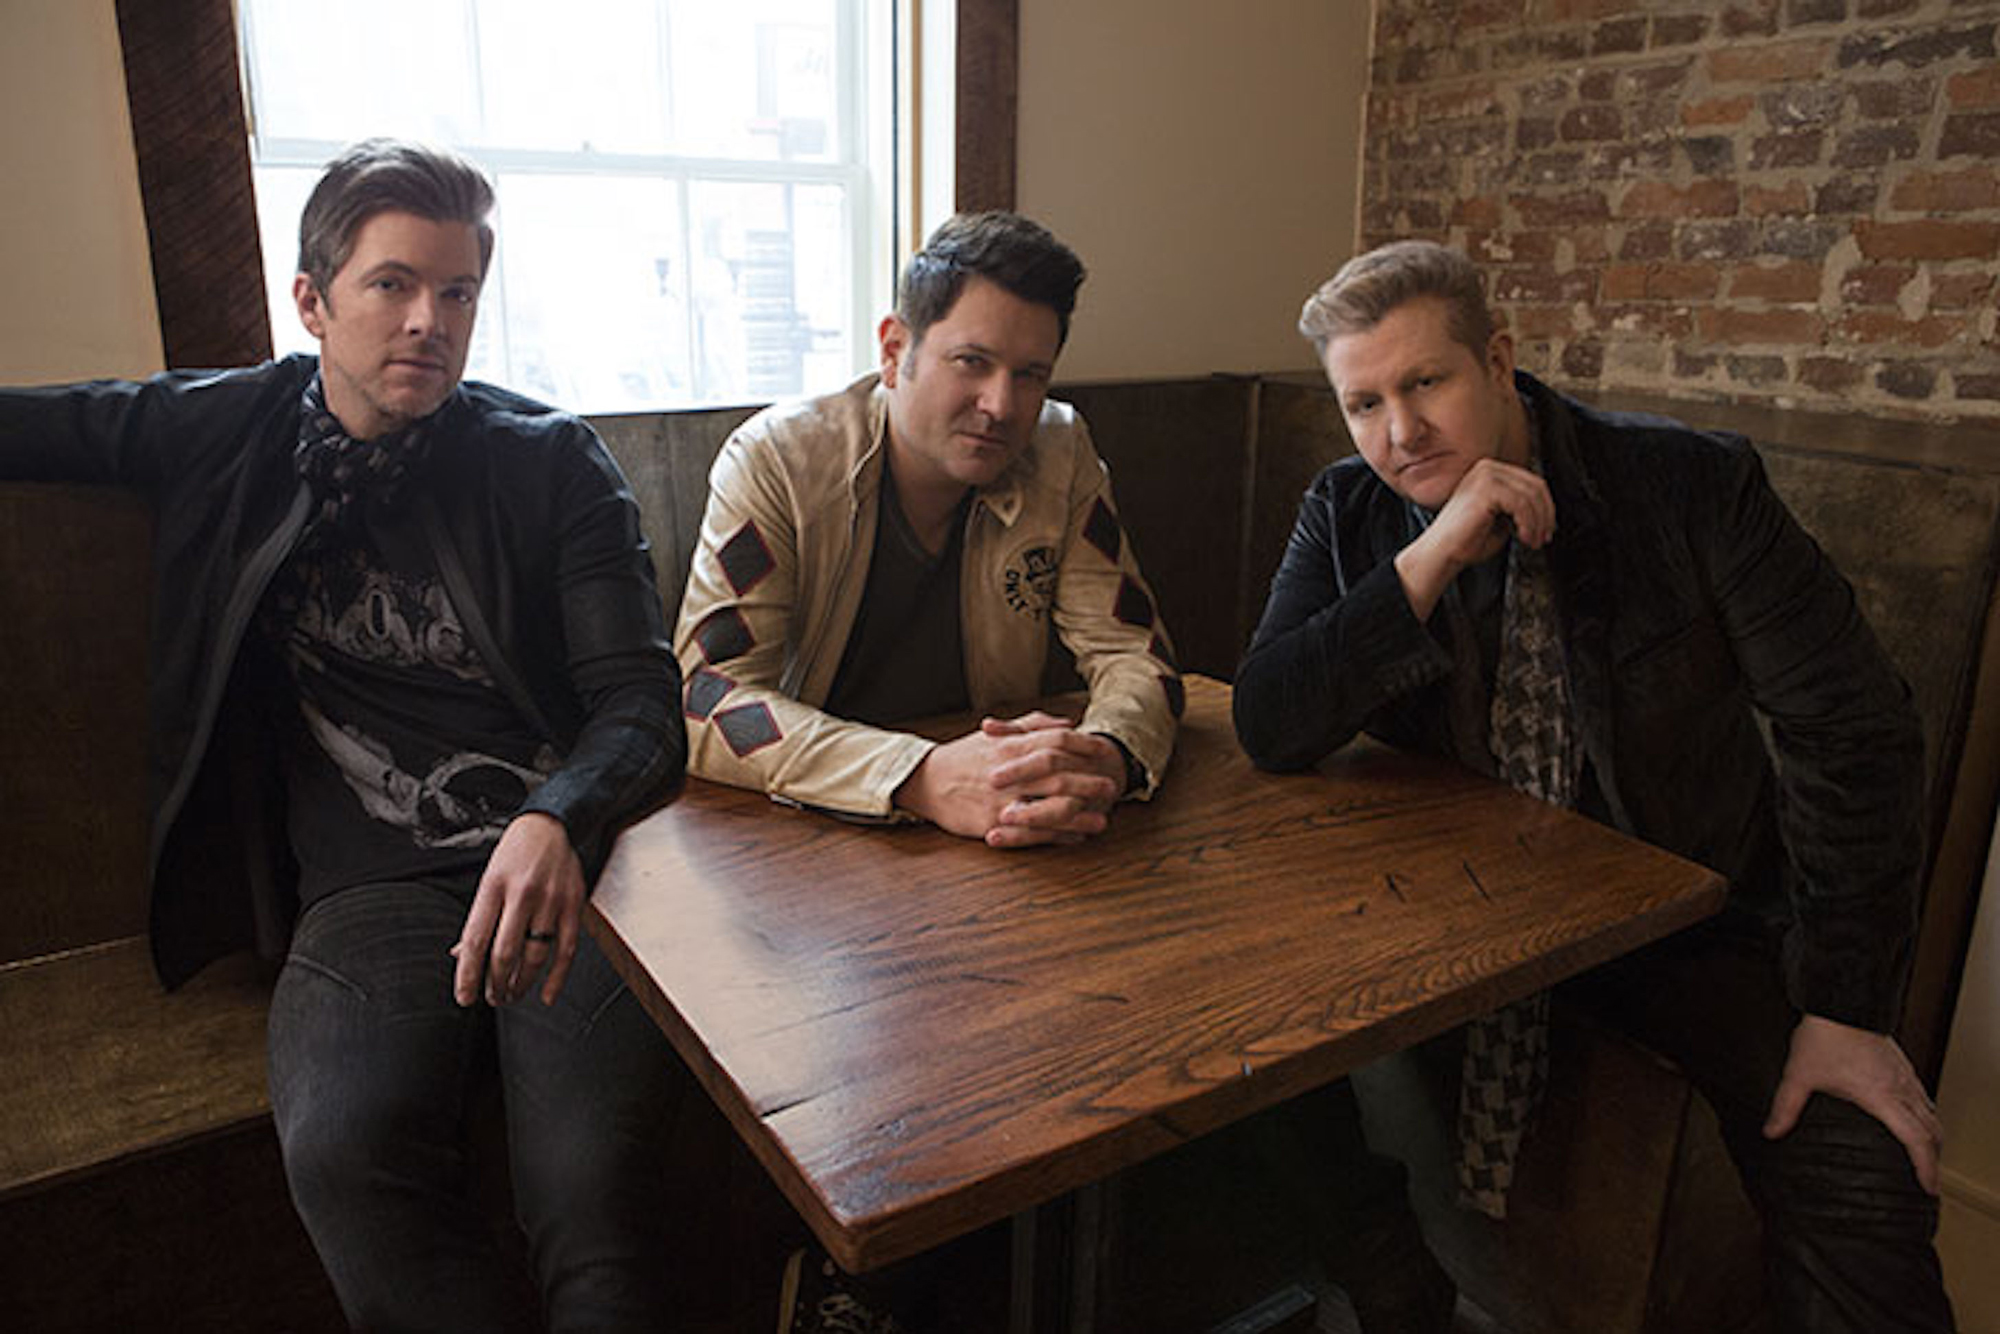 Rascal Flatts Pay Tribute to Kenny Rogers With Cover of 'Through the Years' - Rolling Stone